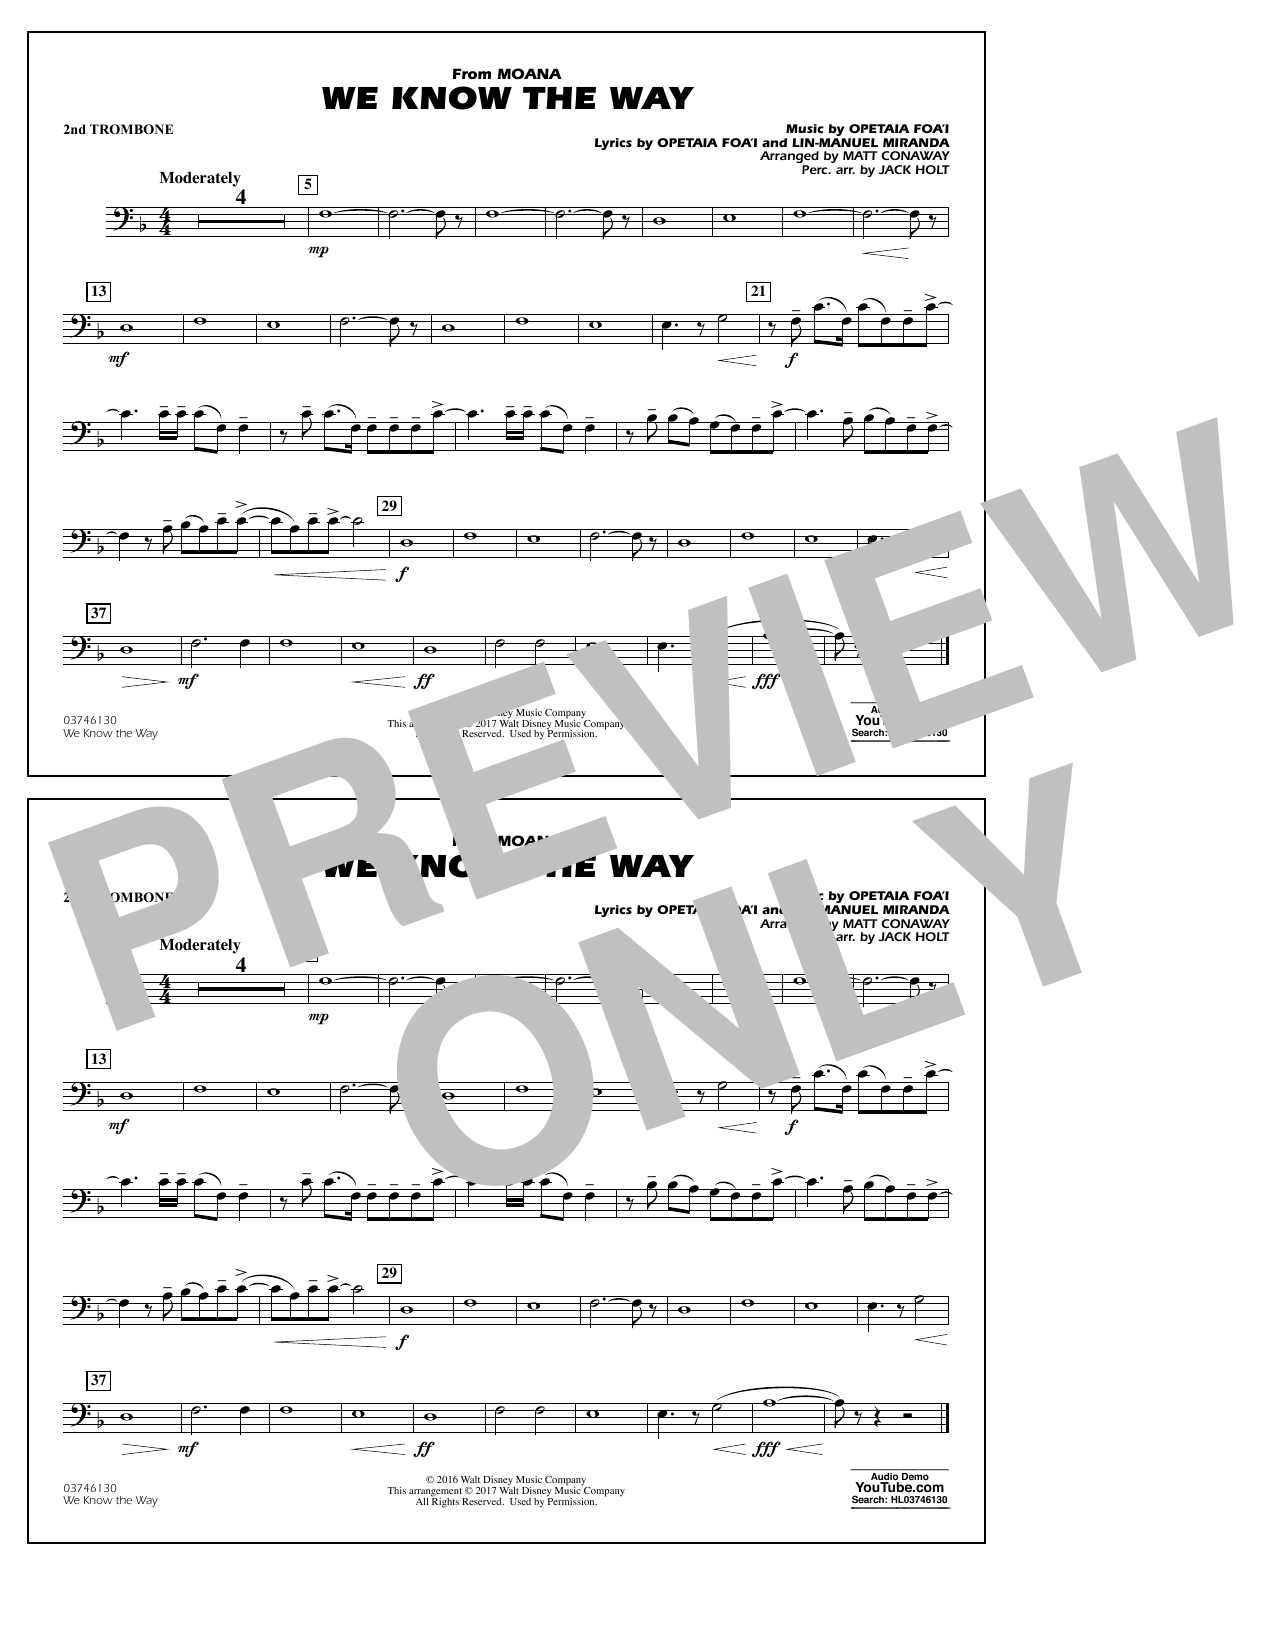 We Know the Way (from Moana) - 2nd Trombone Sheet Music